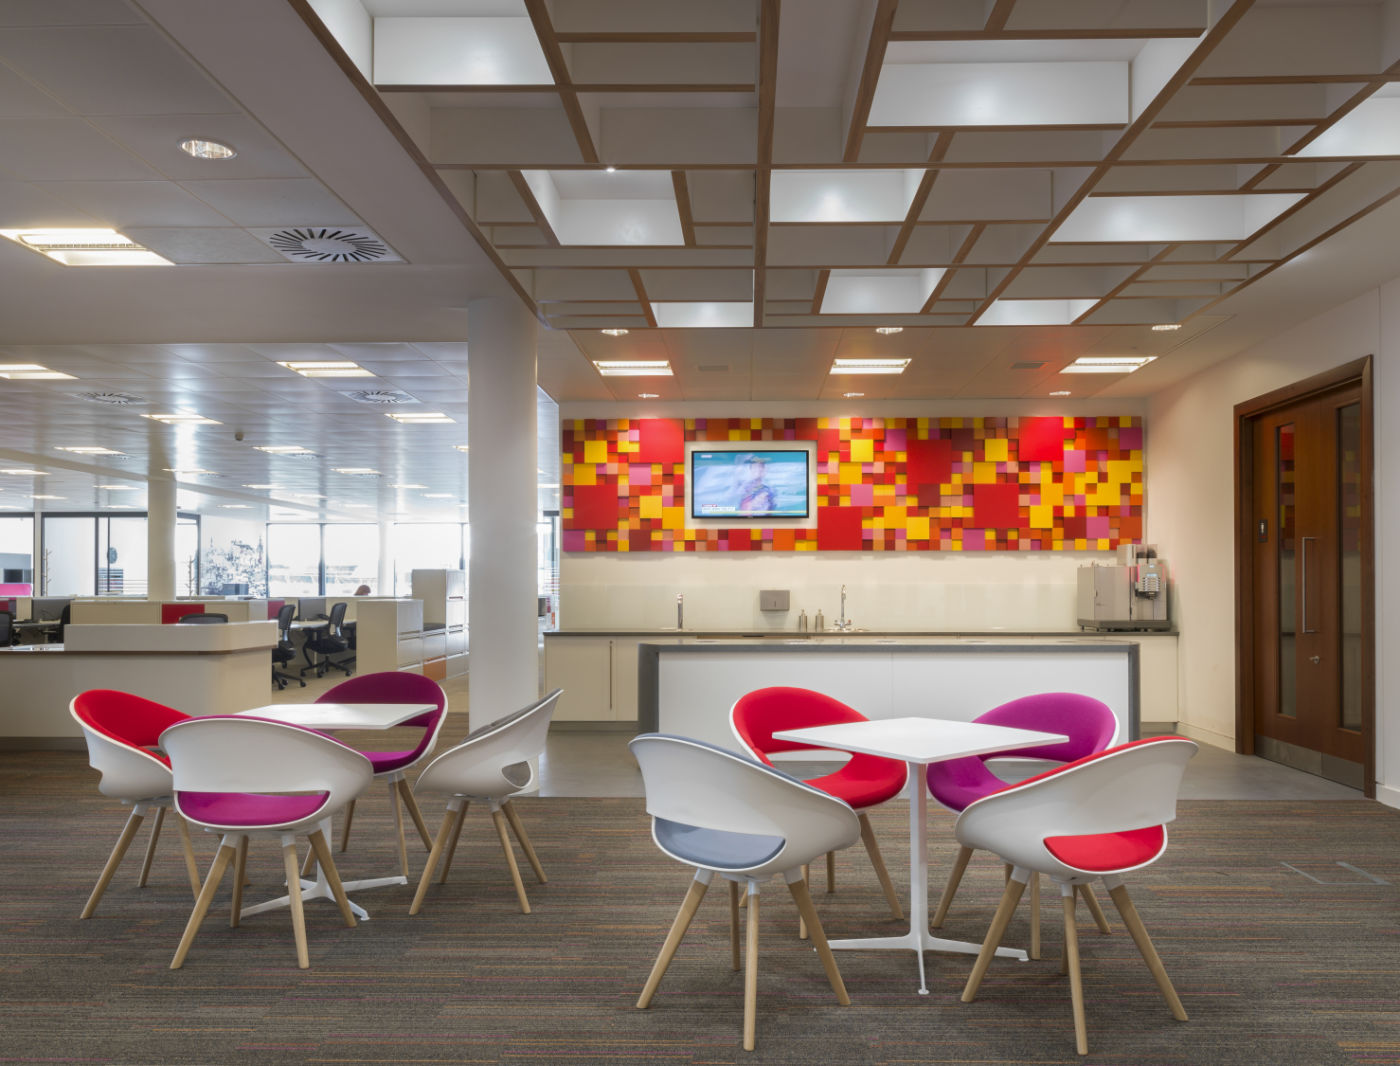 Fit out with colourful chairs and wall detailing